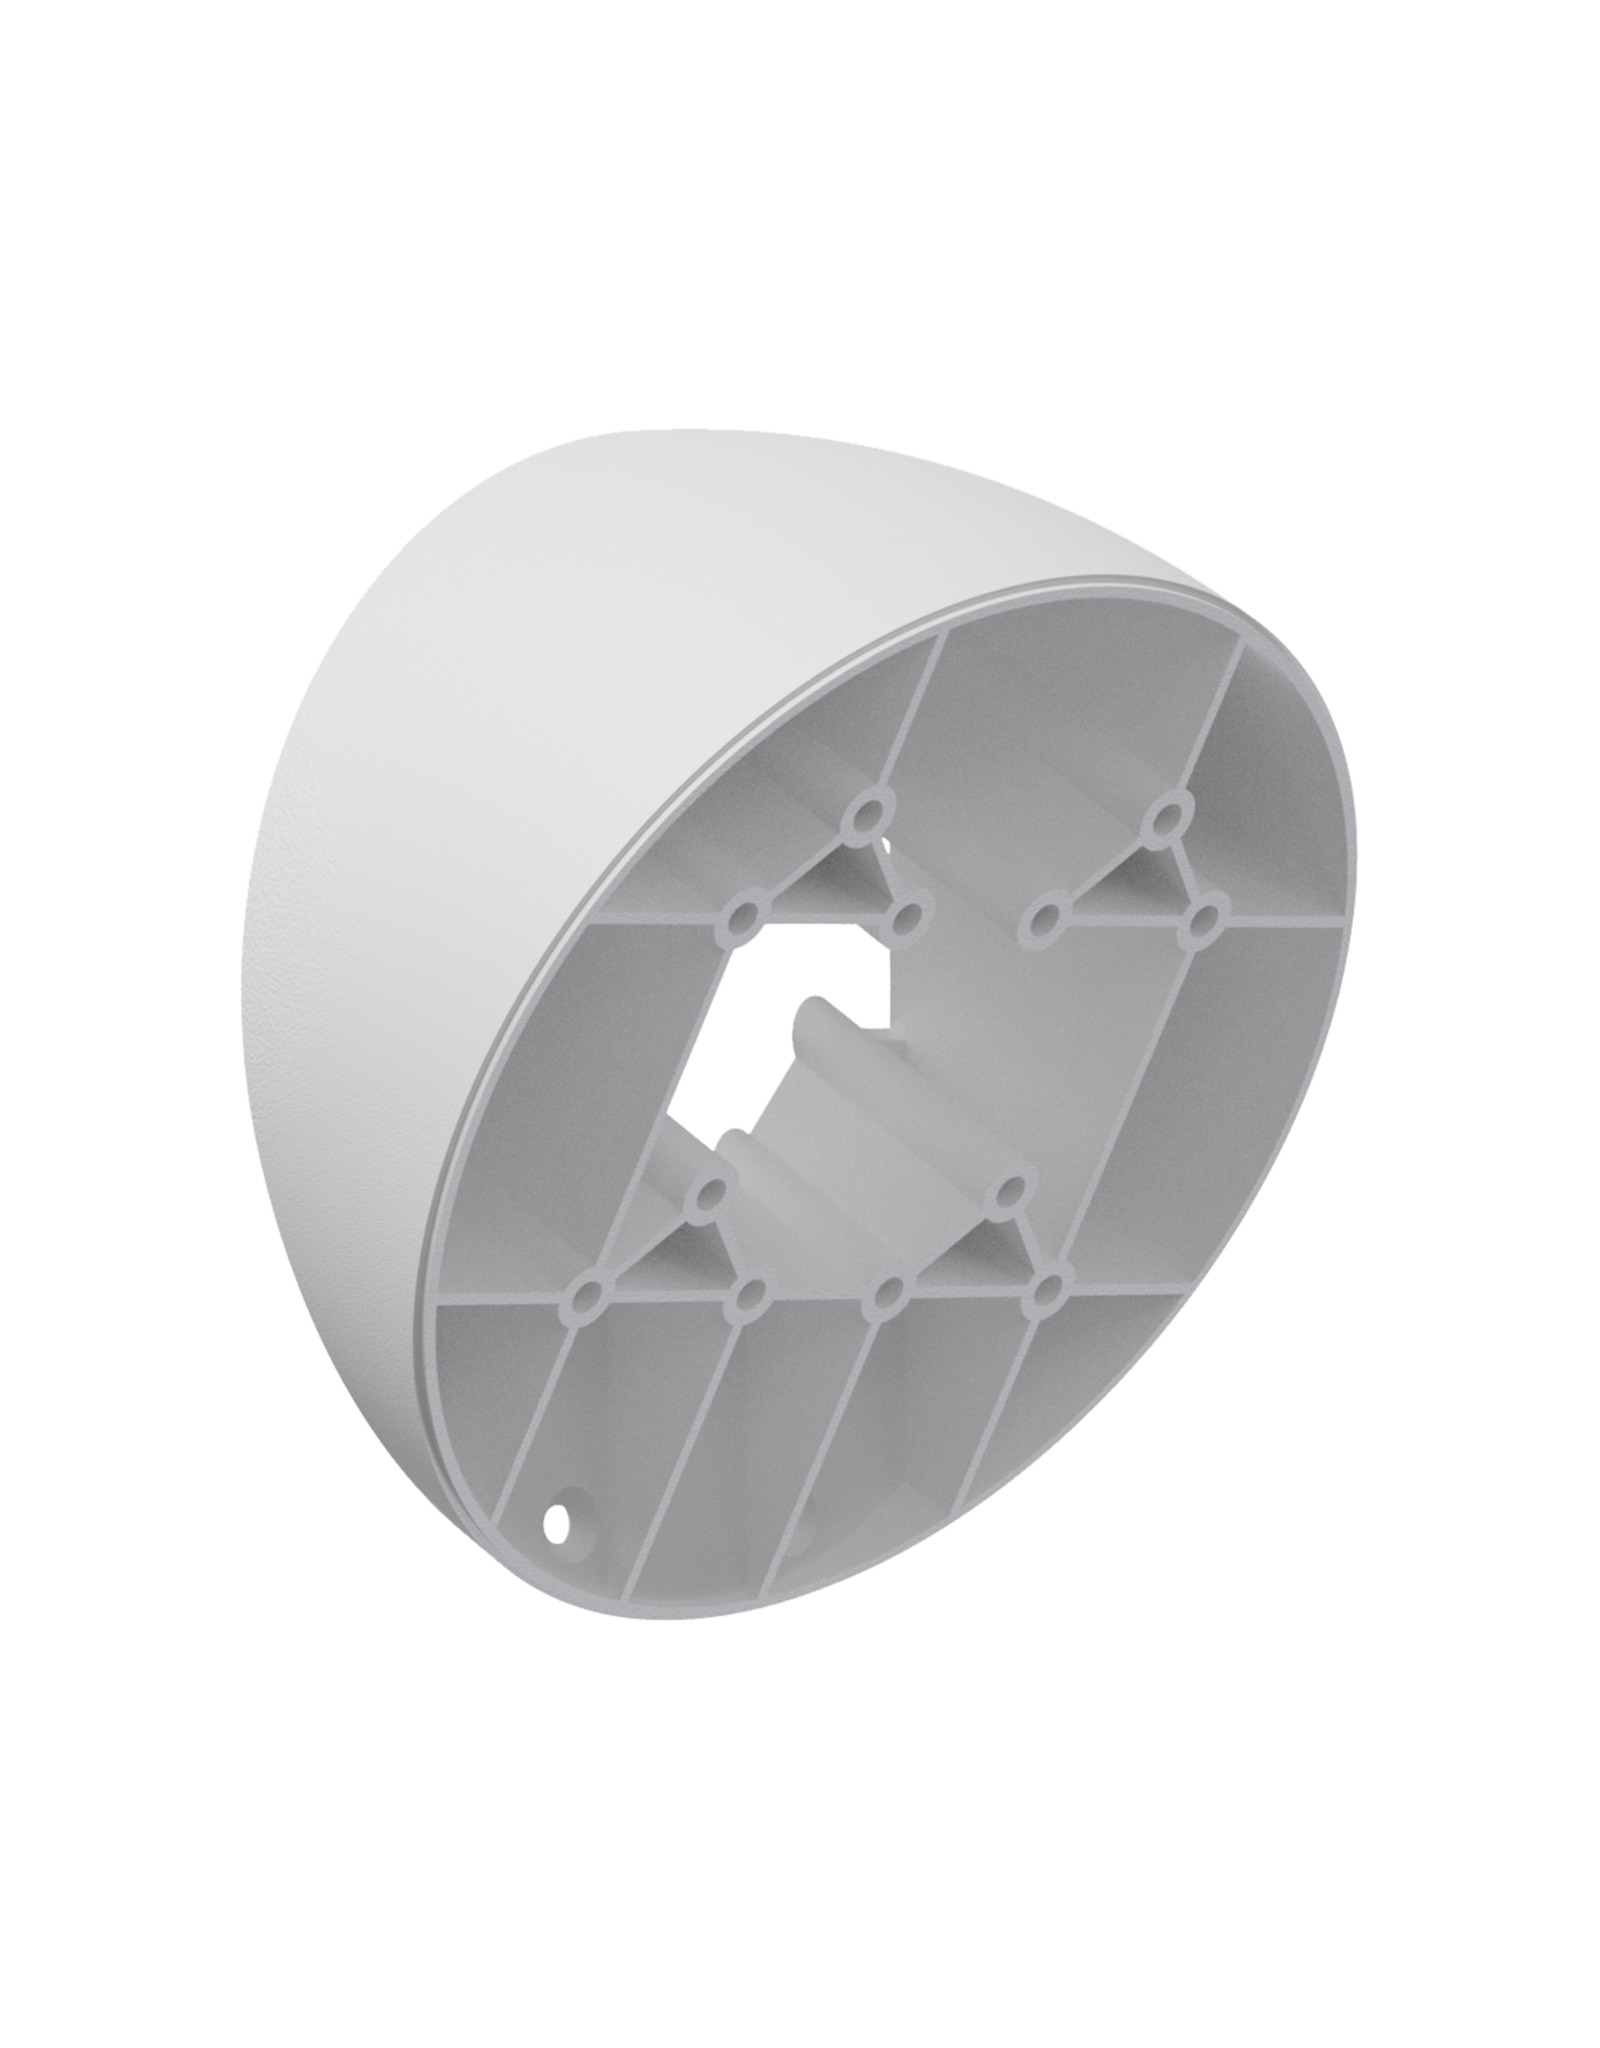 Audac Extension mount with 30° incline angle for ATEO6 White